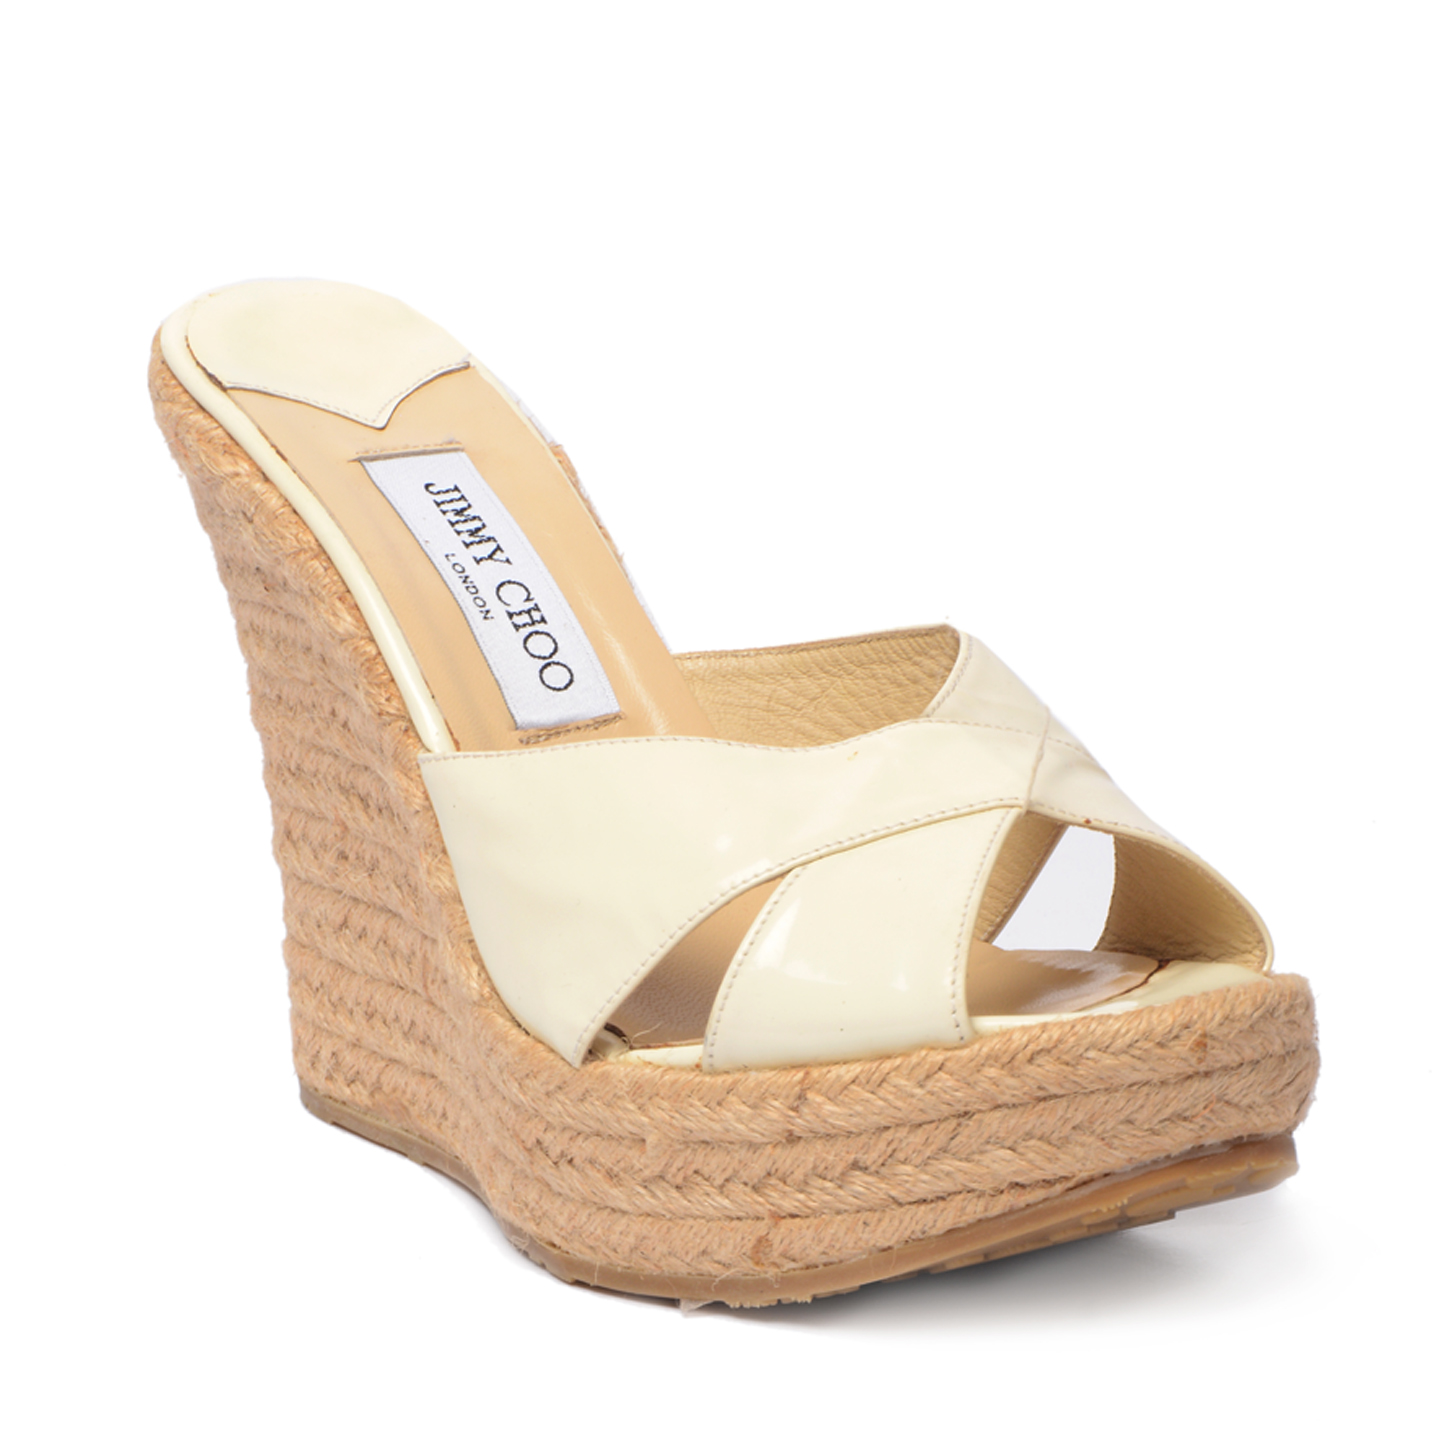 Jimmy Choo Cream Patent 'Phyllis' Espadrilles Wedges (01)